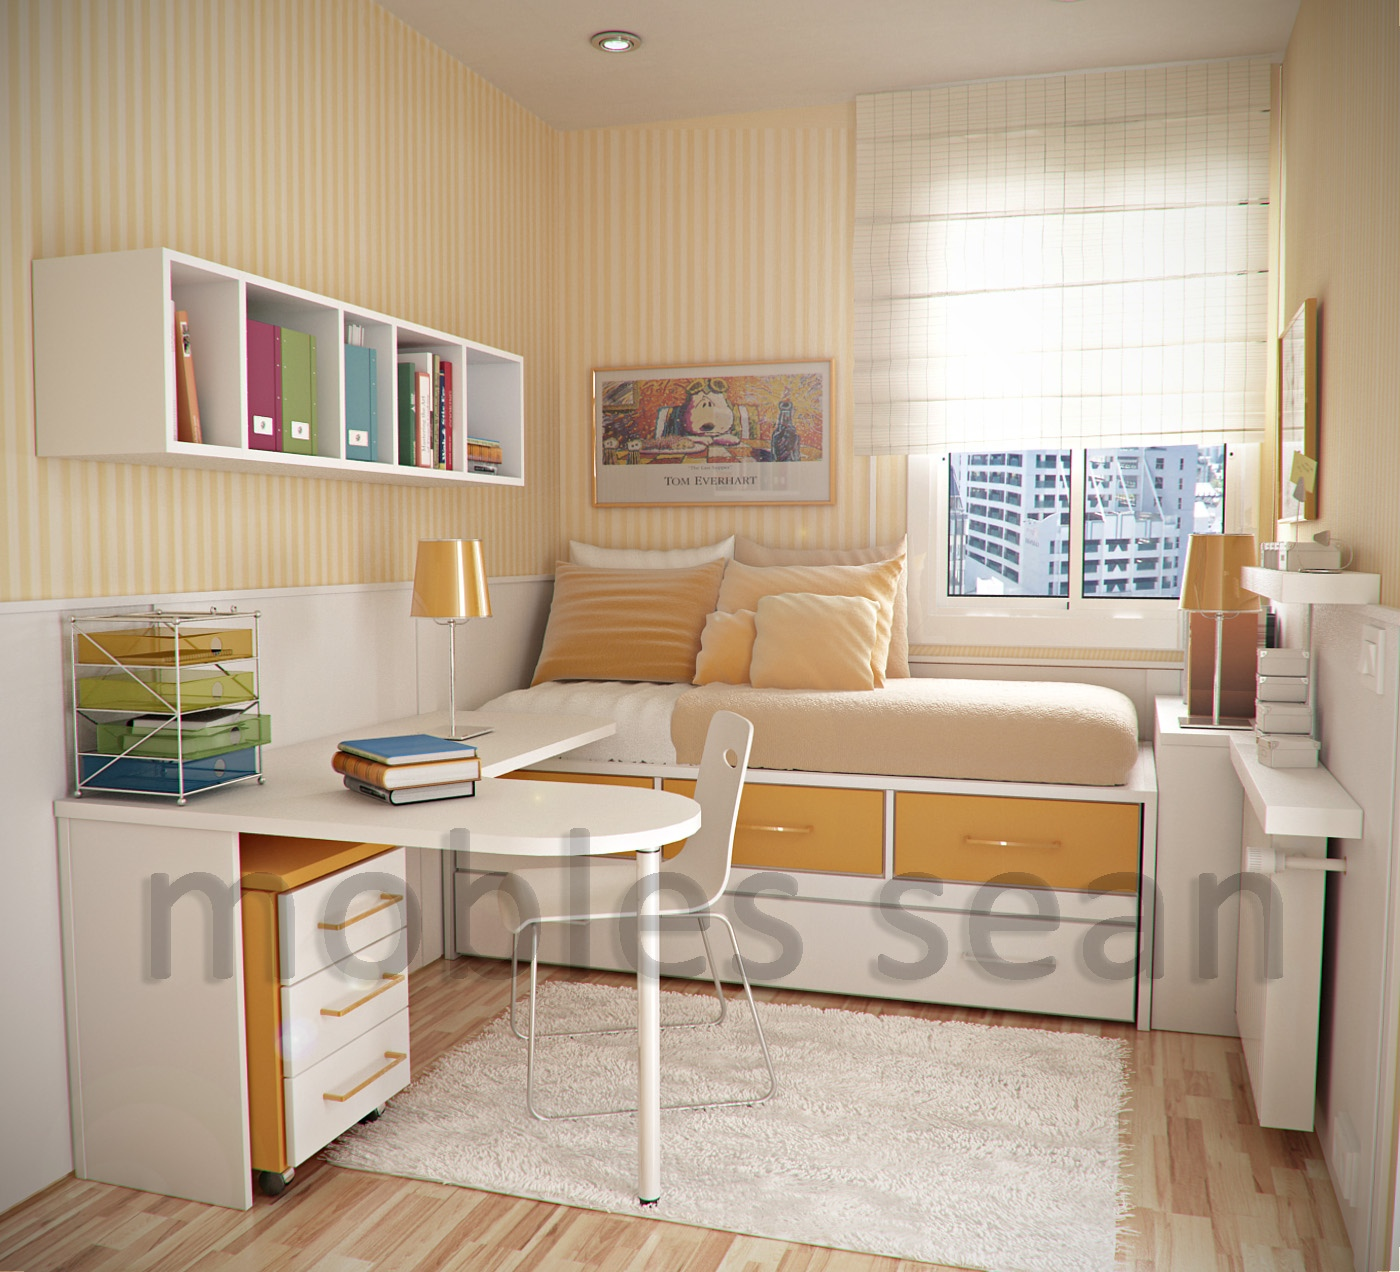 Space saving designs for small kids rooms - Making most of small spaces property ...